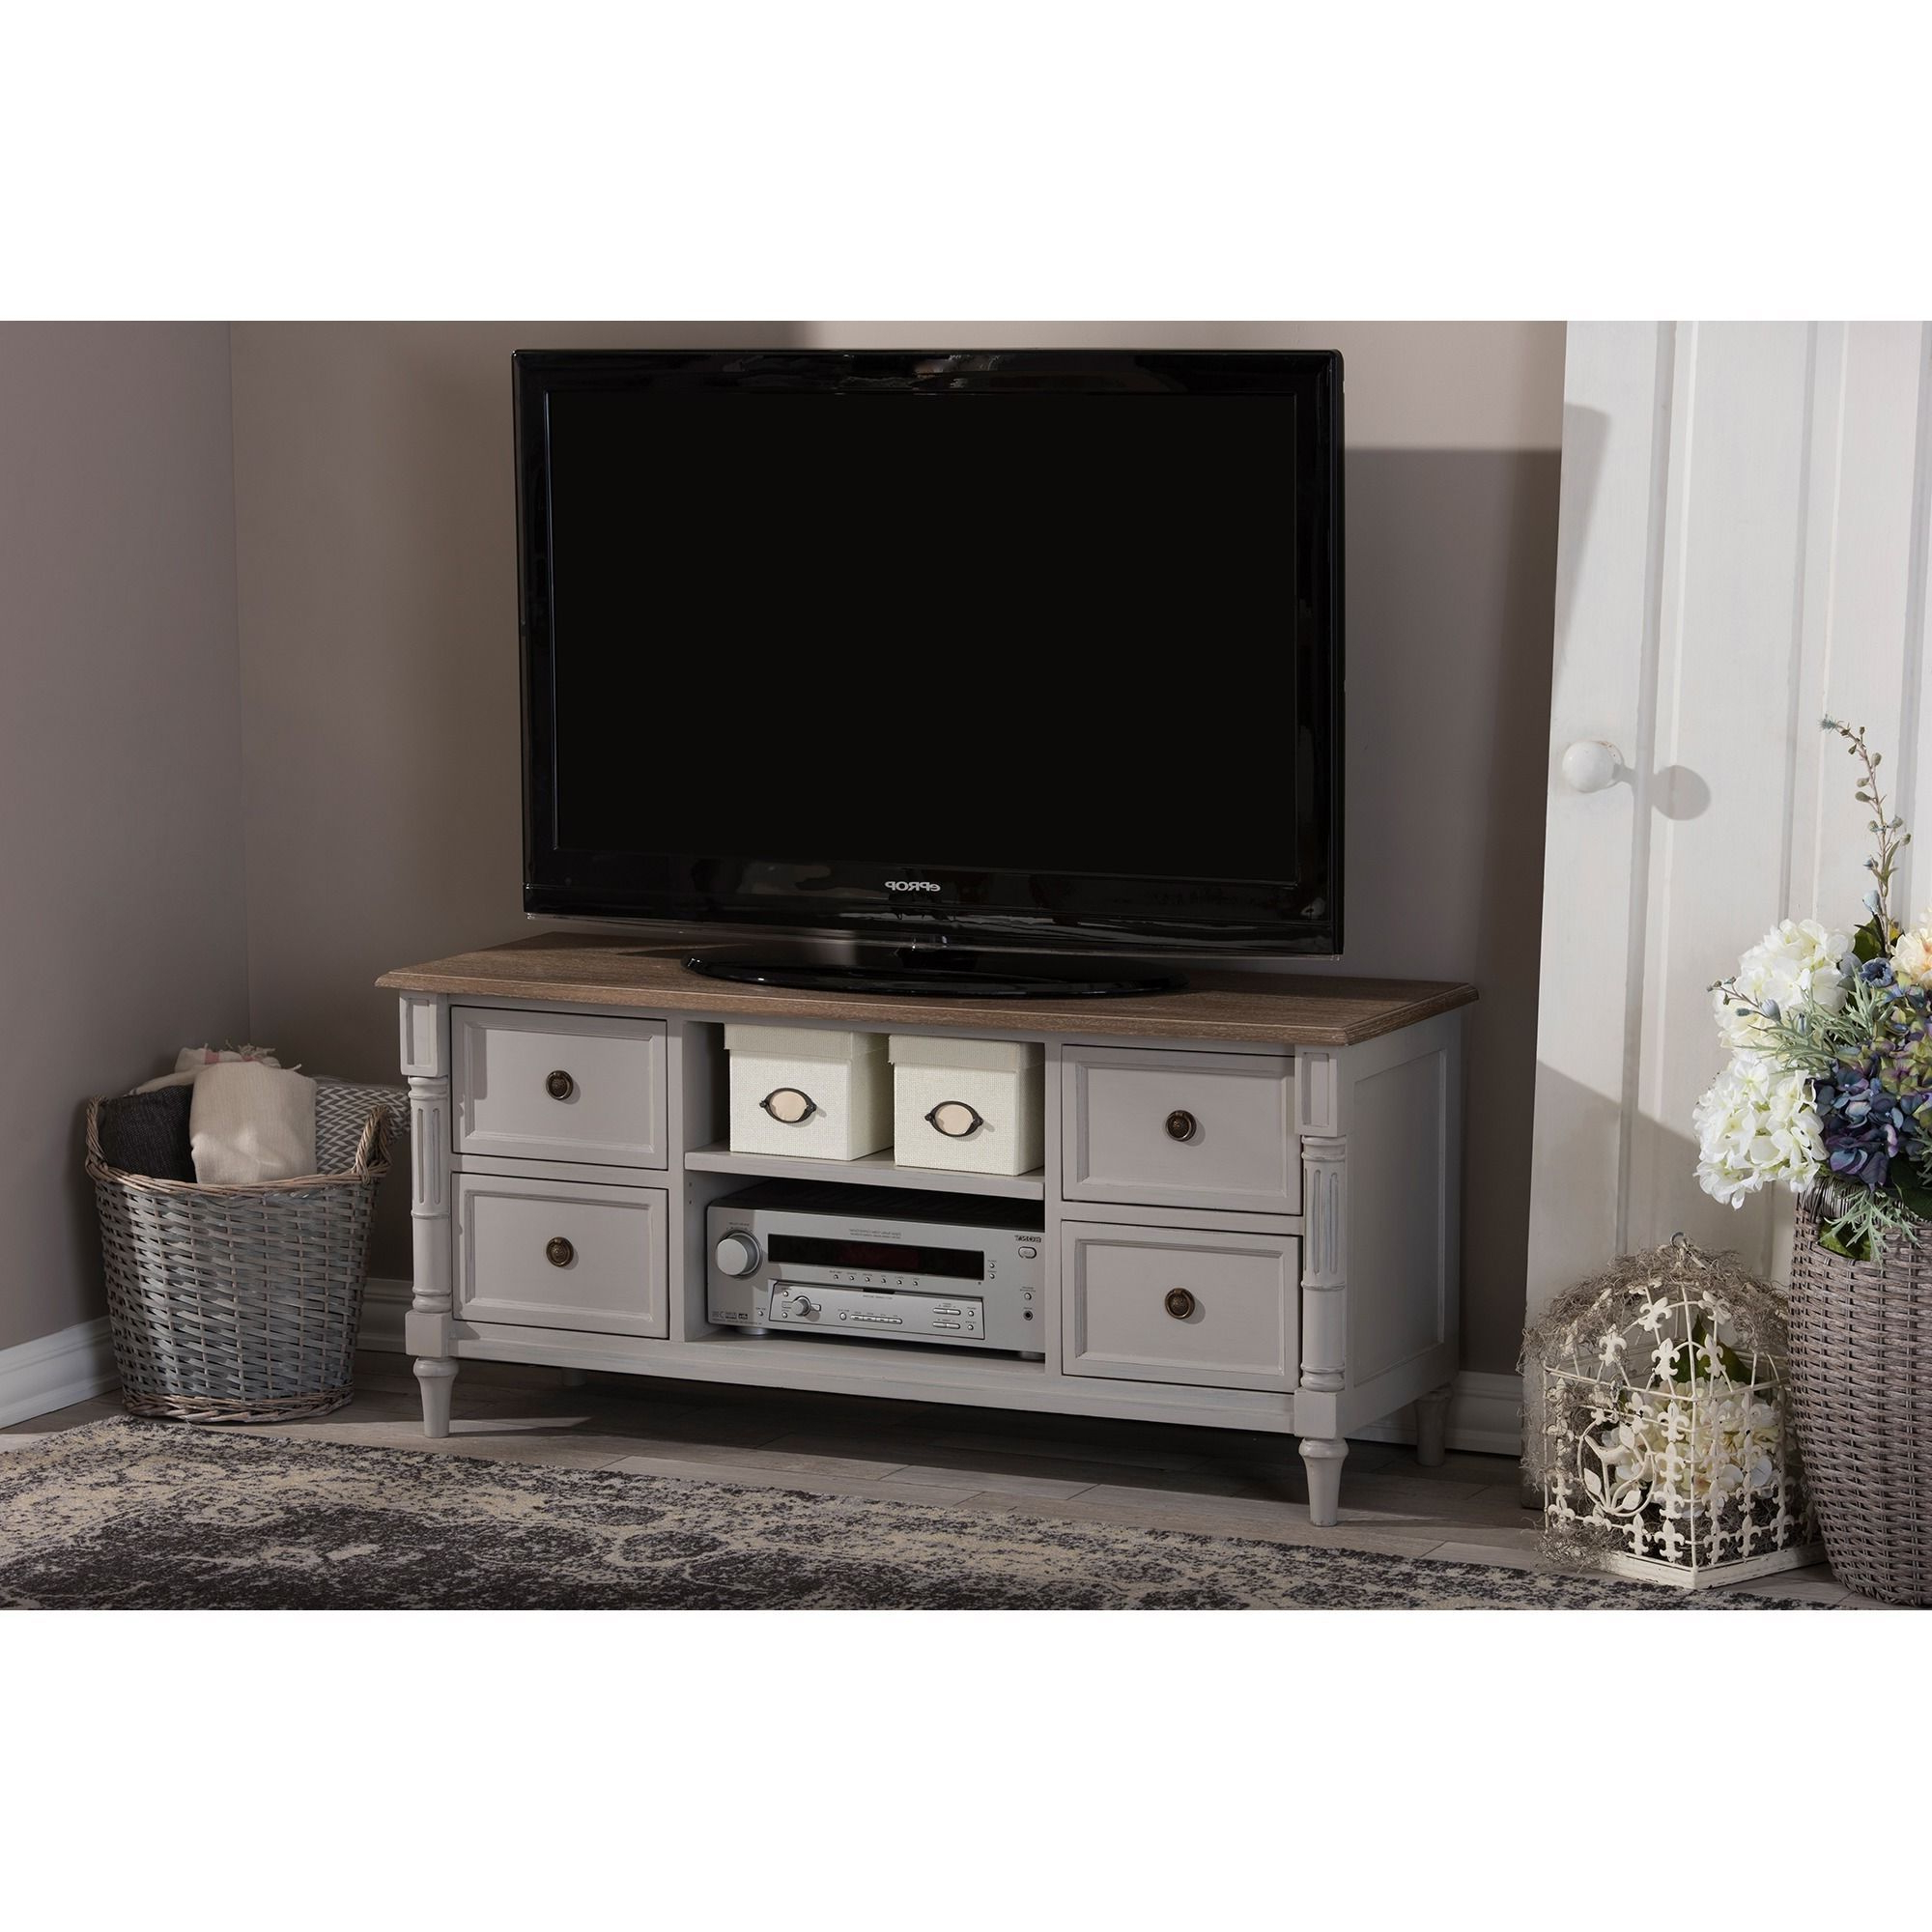 Preferred Rustic, Country Farmhouse Pieces Like The Edouard Tv Cabinet Work To Regarding French Country Tv Stands (View 12 of 20)